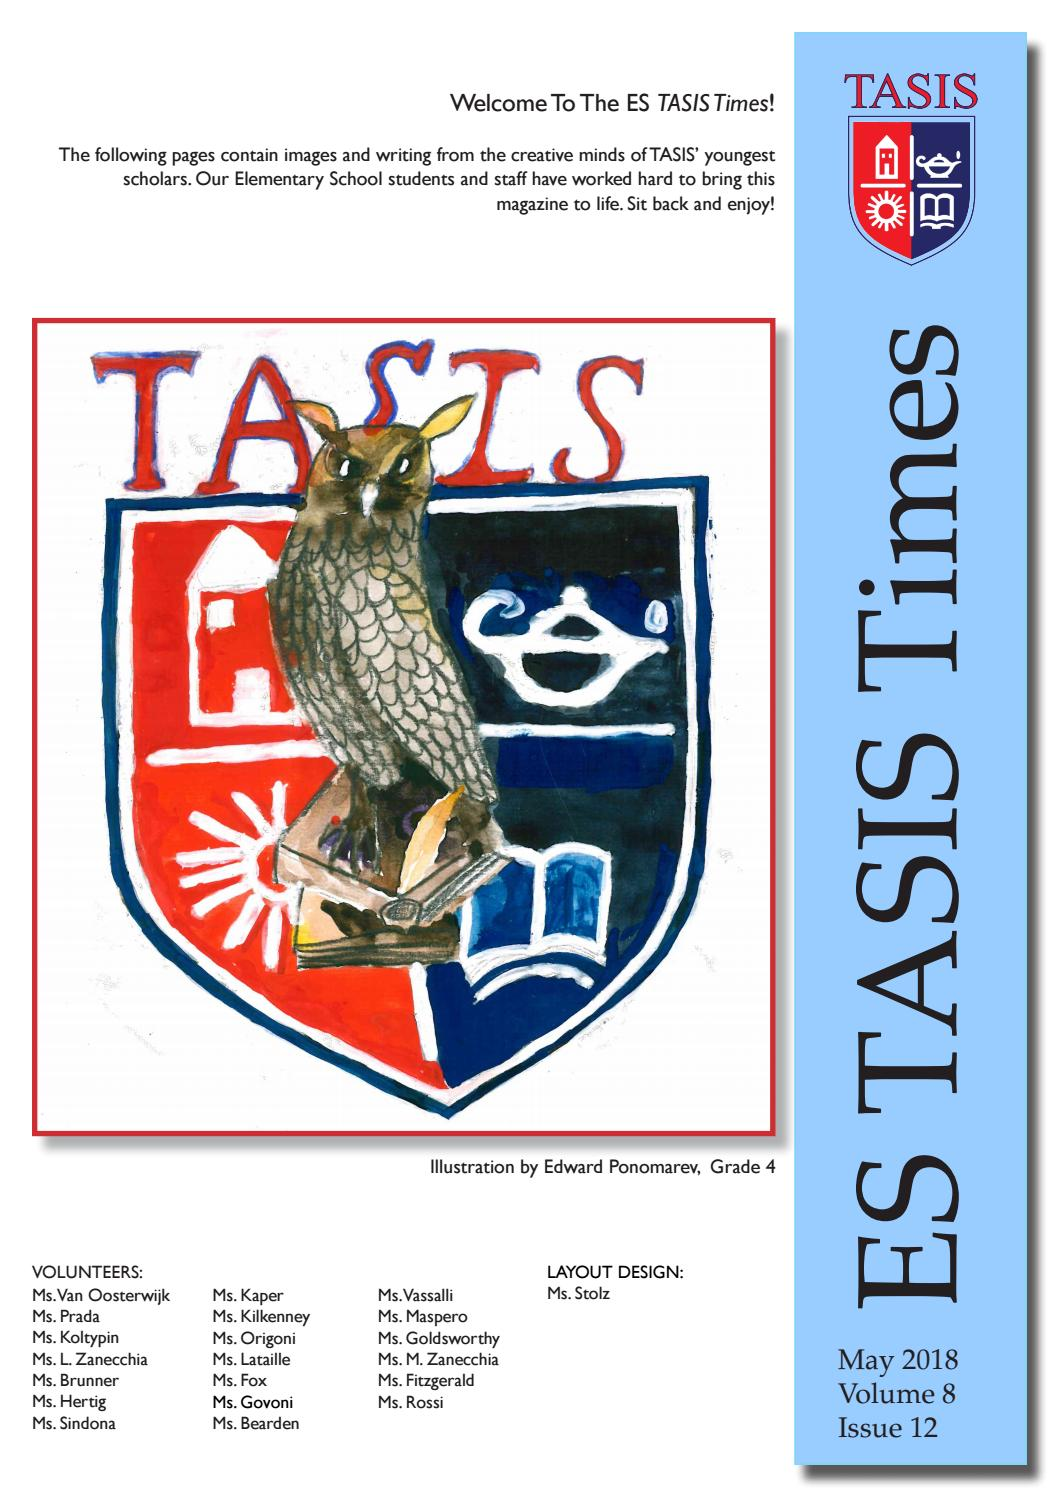 Ce L Ho Sempre Bagnata Es Tasis Times 2018 By The American School In Switzerland Issuu